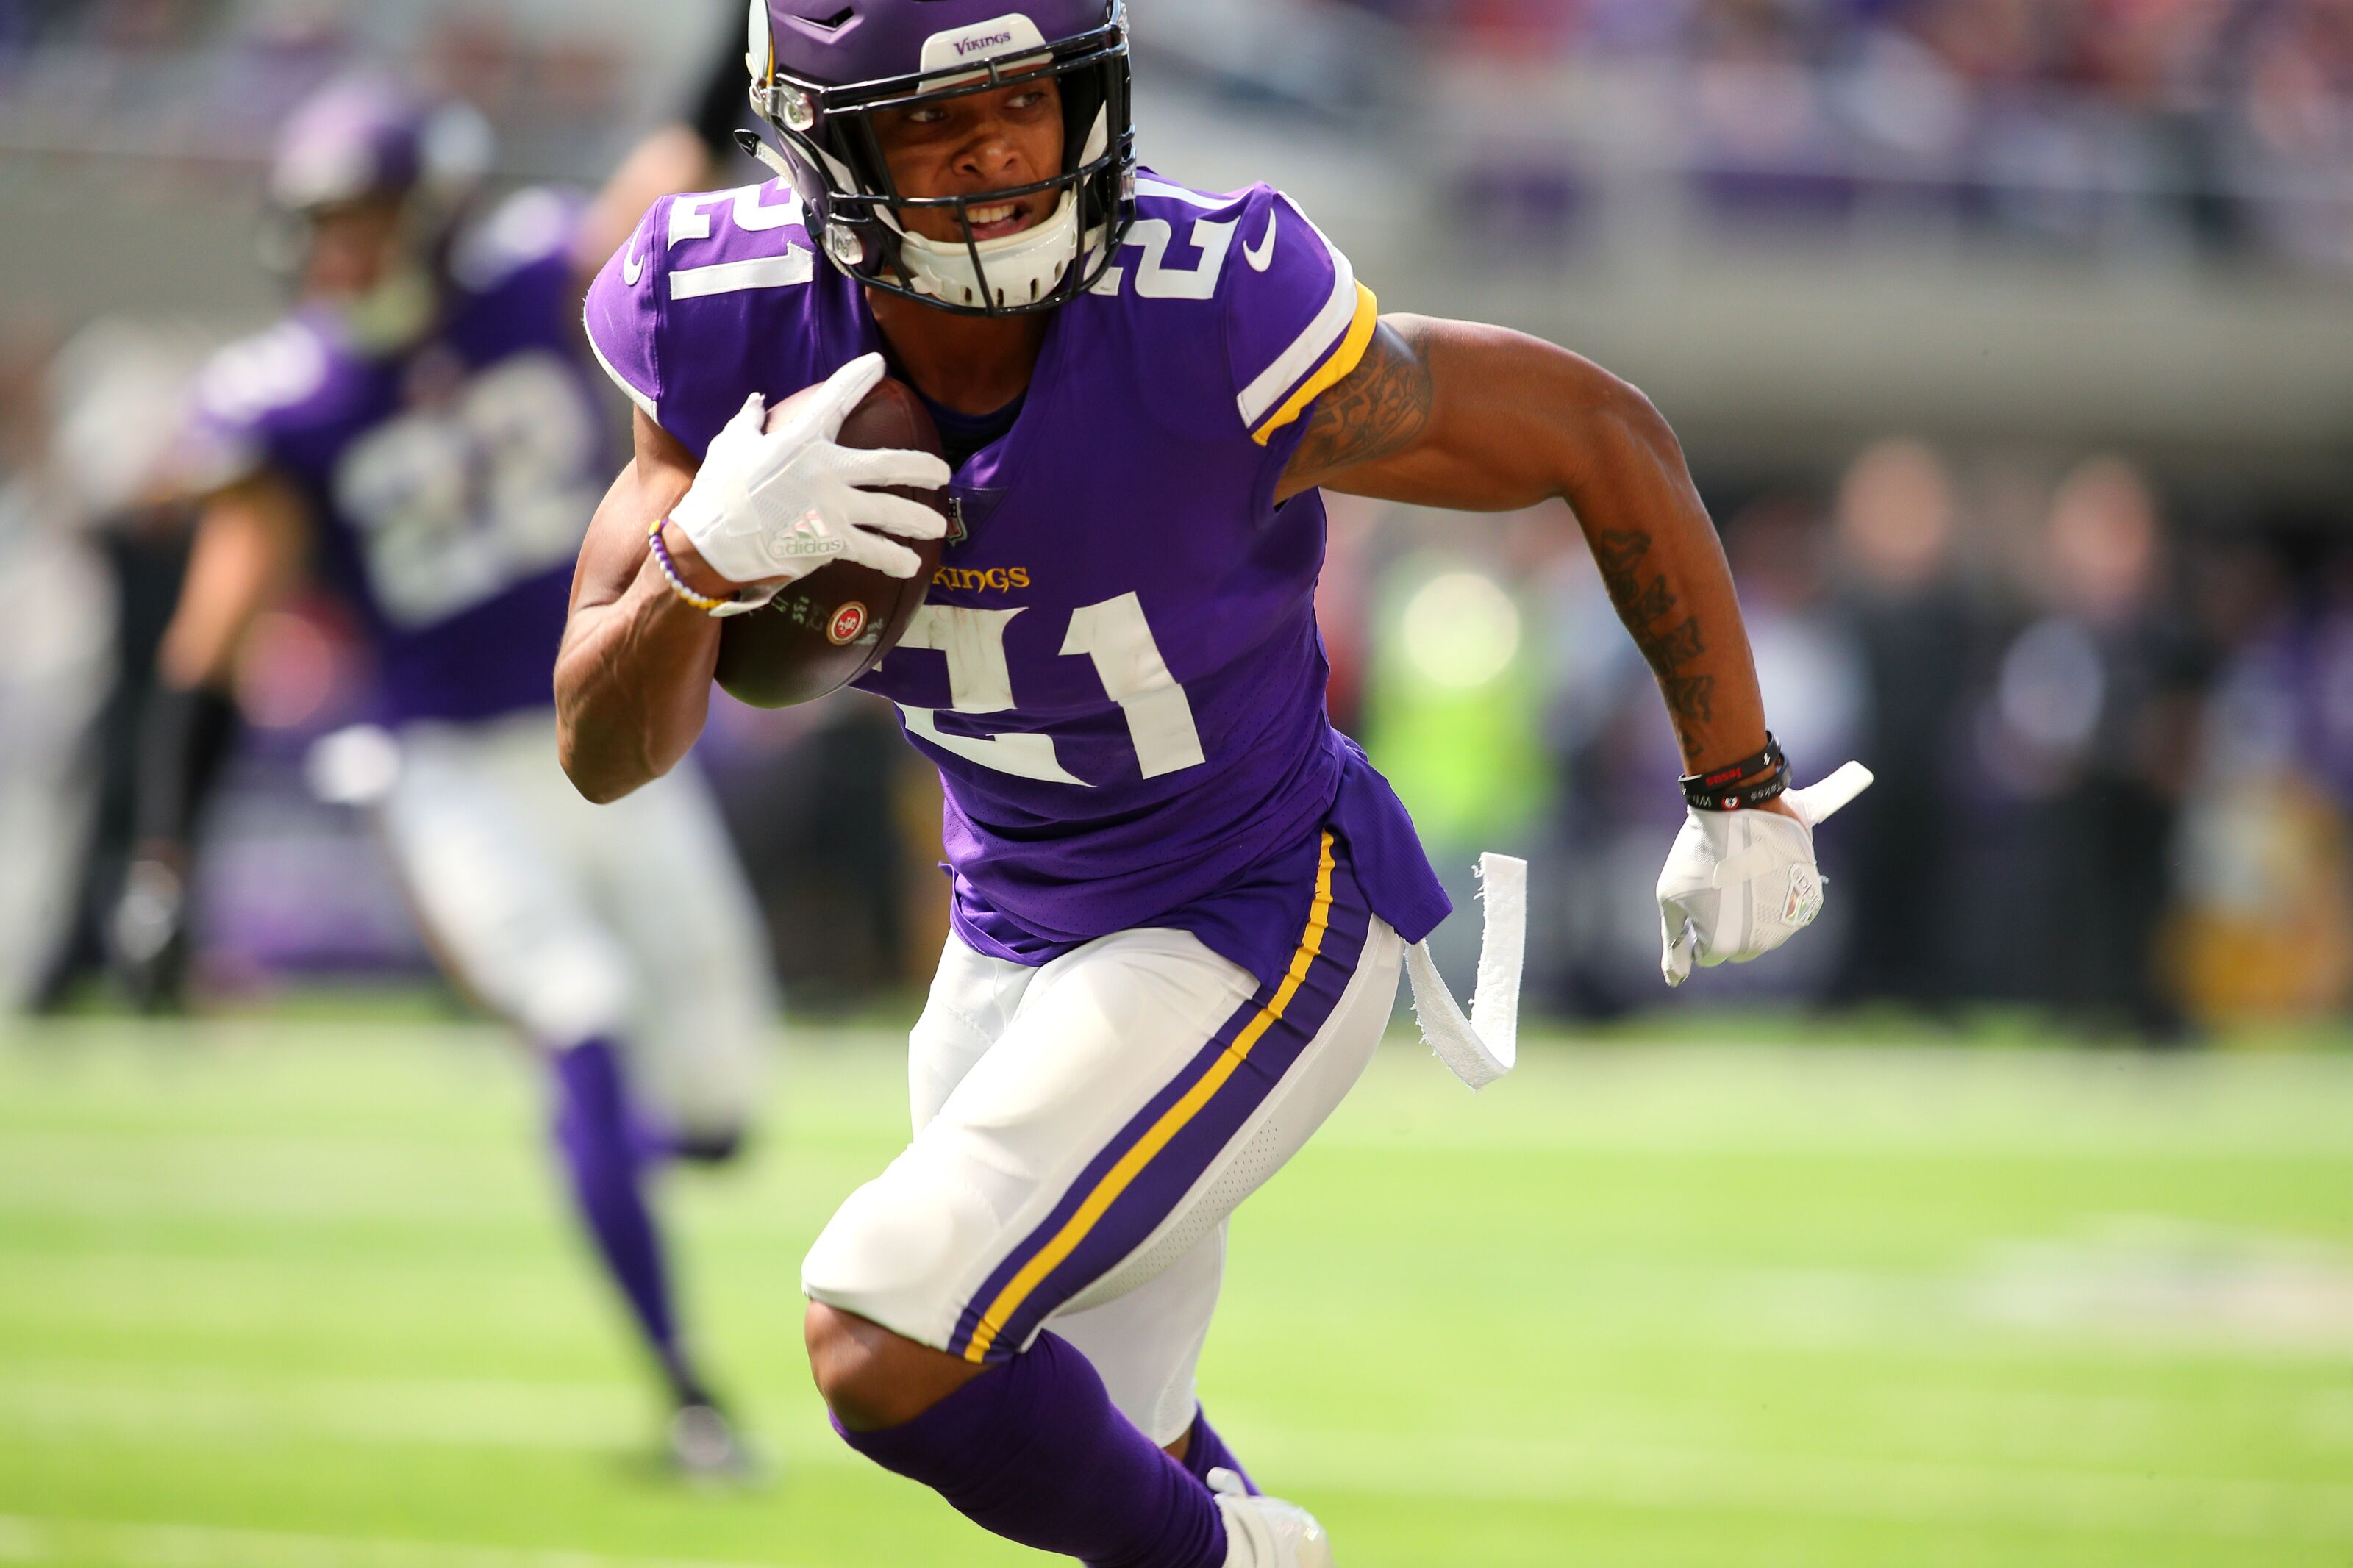 What can the Vikings expect from Mike Hughes in 2019?